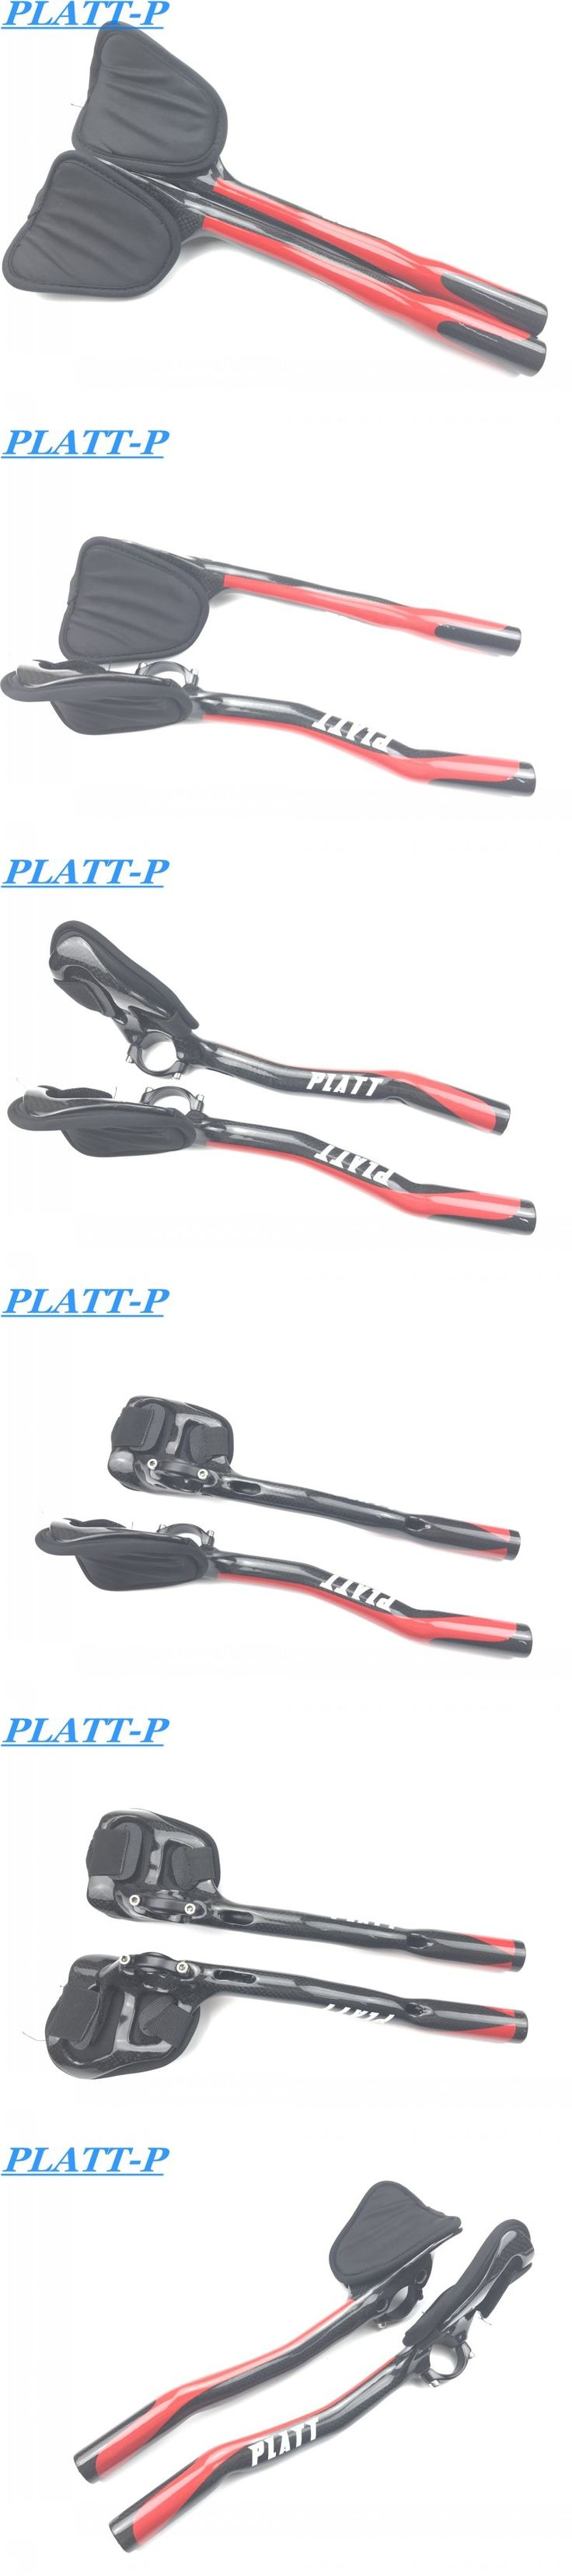 Speed boat PLATT-P cycling AVENIR full carbon Remaining handlebar TT style carbon road bike Handlebar carbon trial bike Han